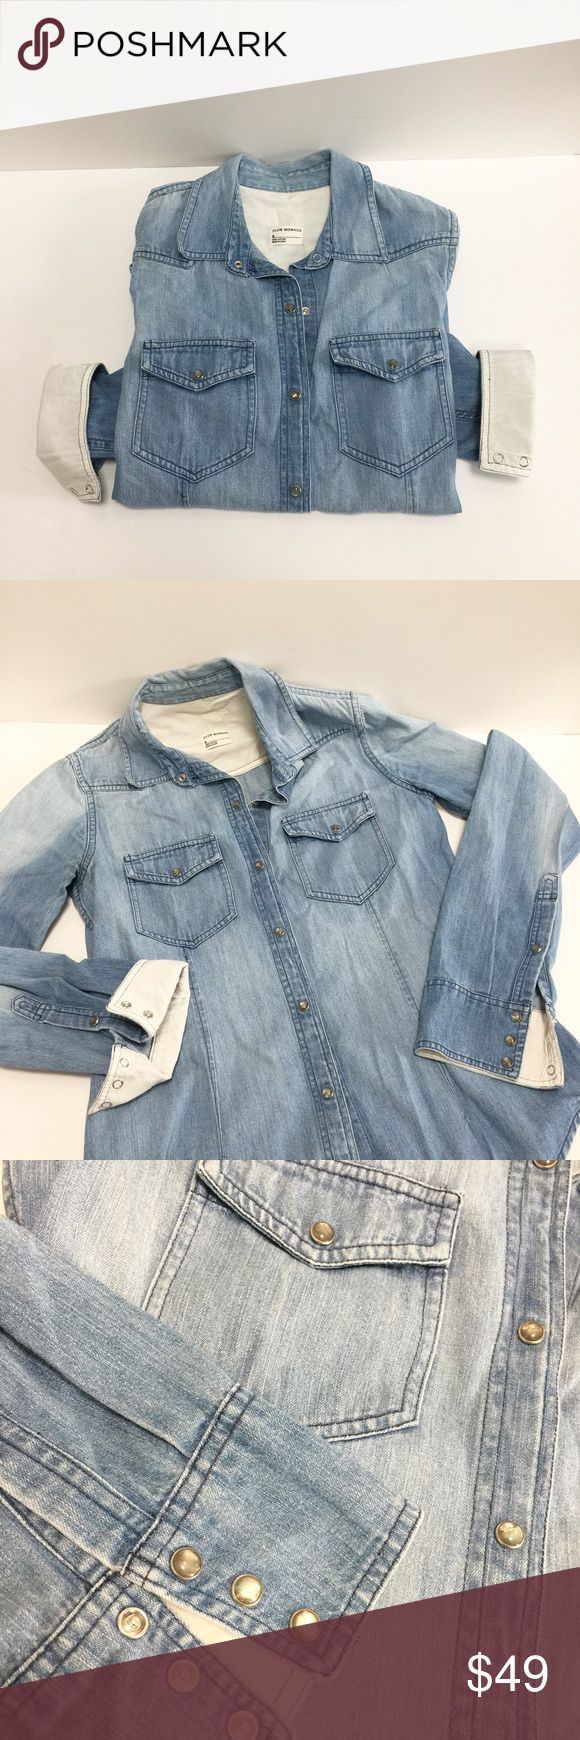 Club Monaco Light Denim Shirt Size S Light Denim shirt with snap closure. 2 small front pockets in the front, linen lined cuffs and snap closure all over. Fitted and fits true to size. Tops Button Down Shirts